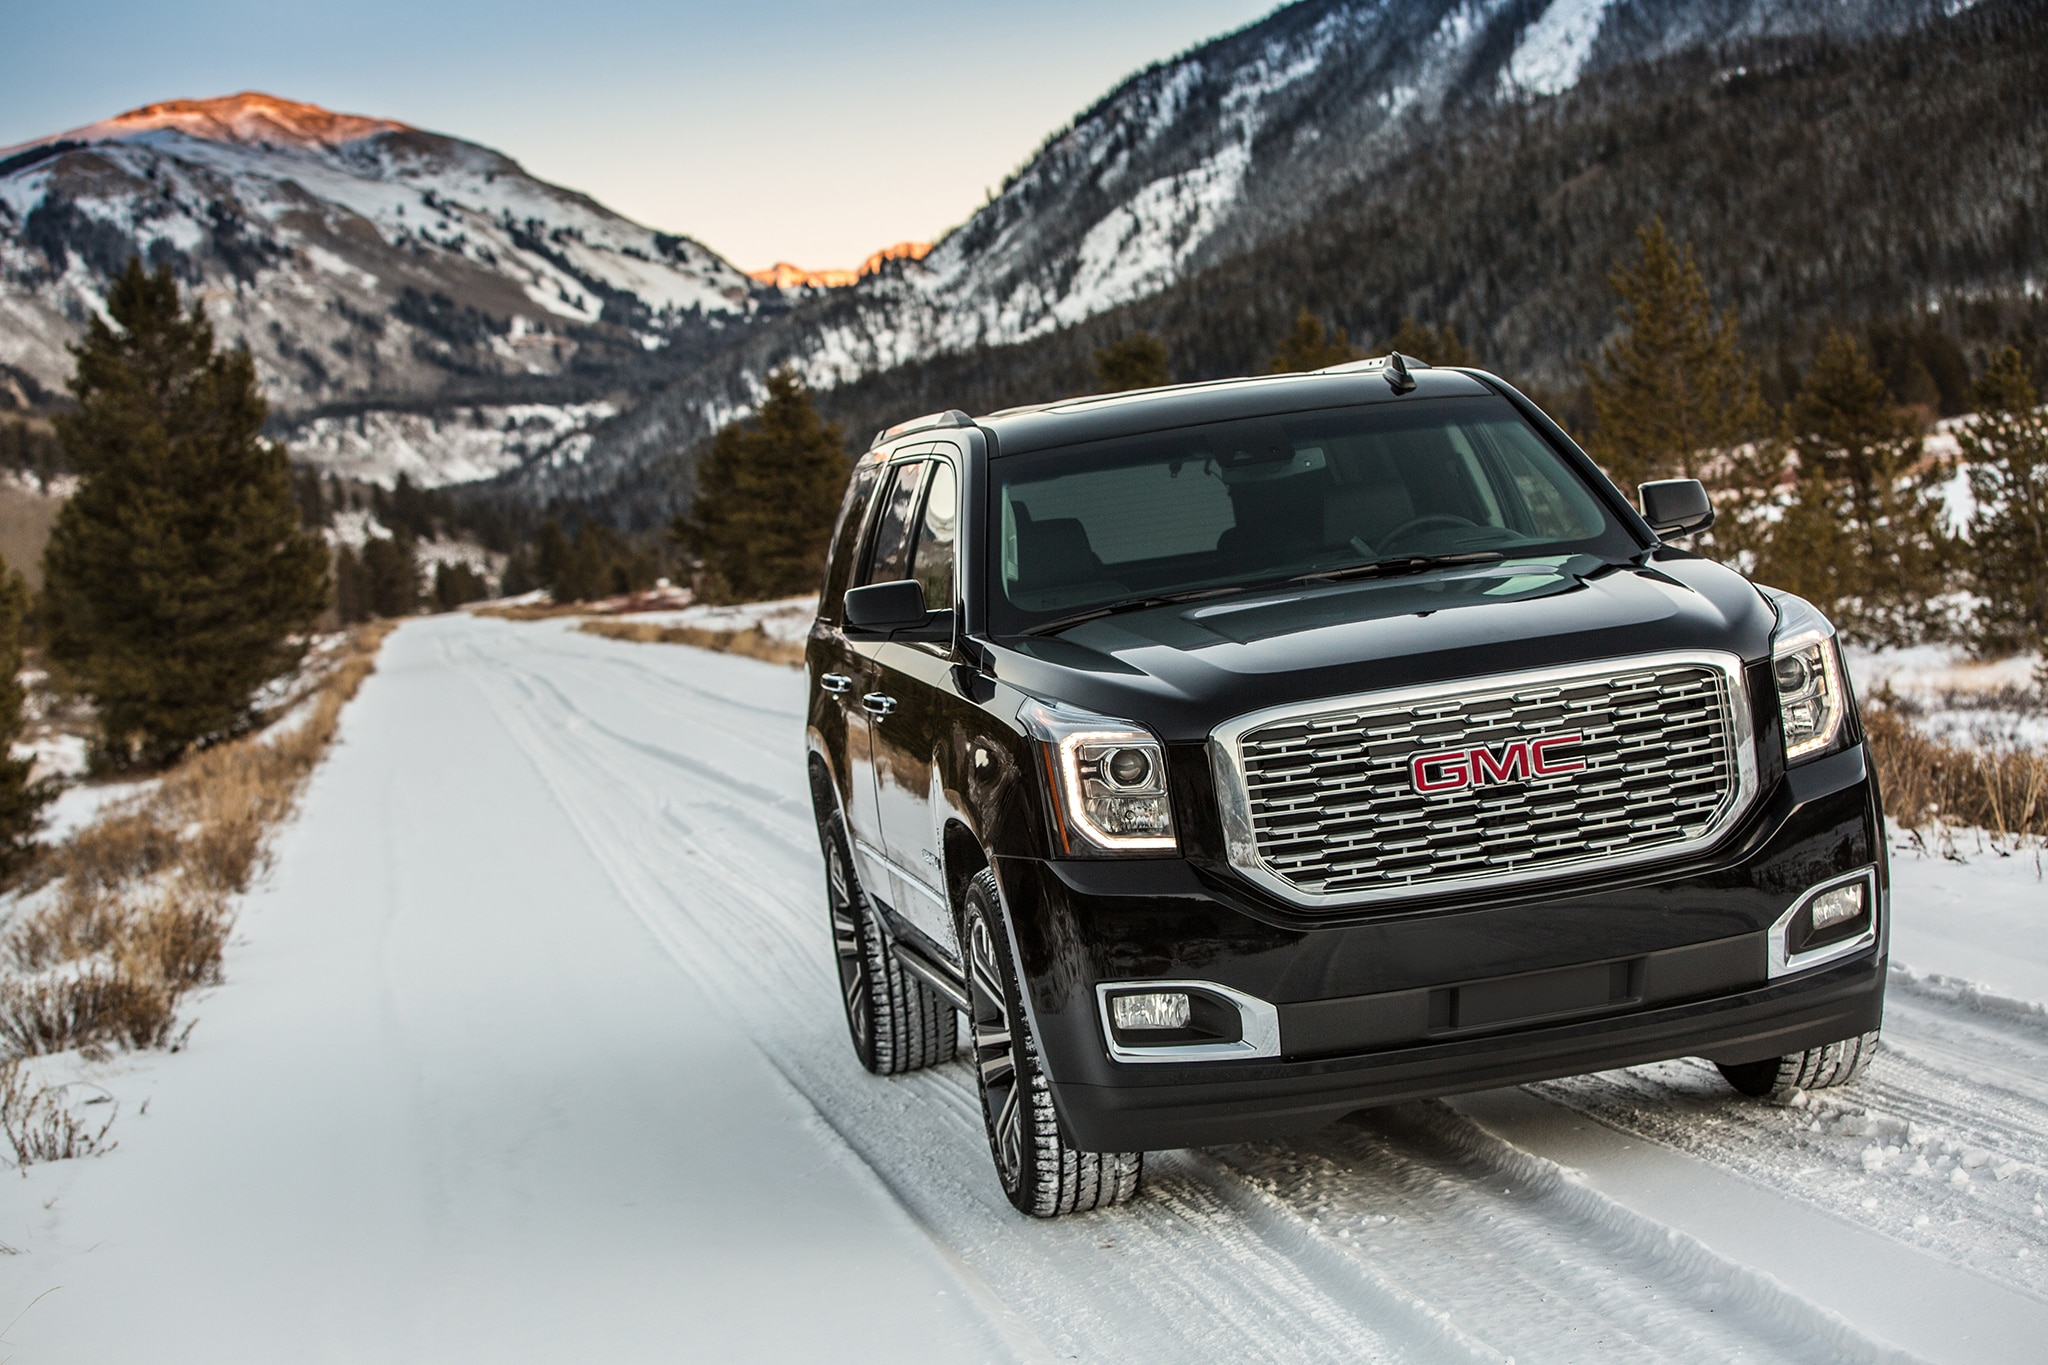 2018 GMC Yukon Denali Ultimate Black Edition Casts Its Own Shadow | Automobile Magazine